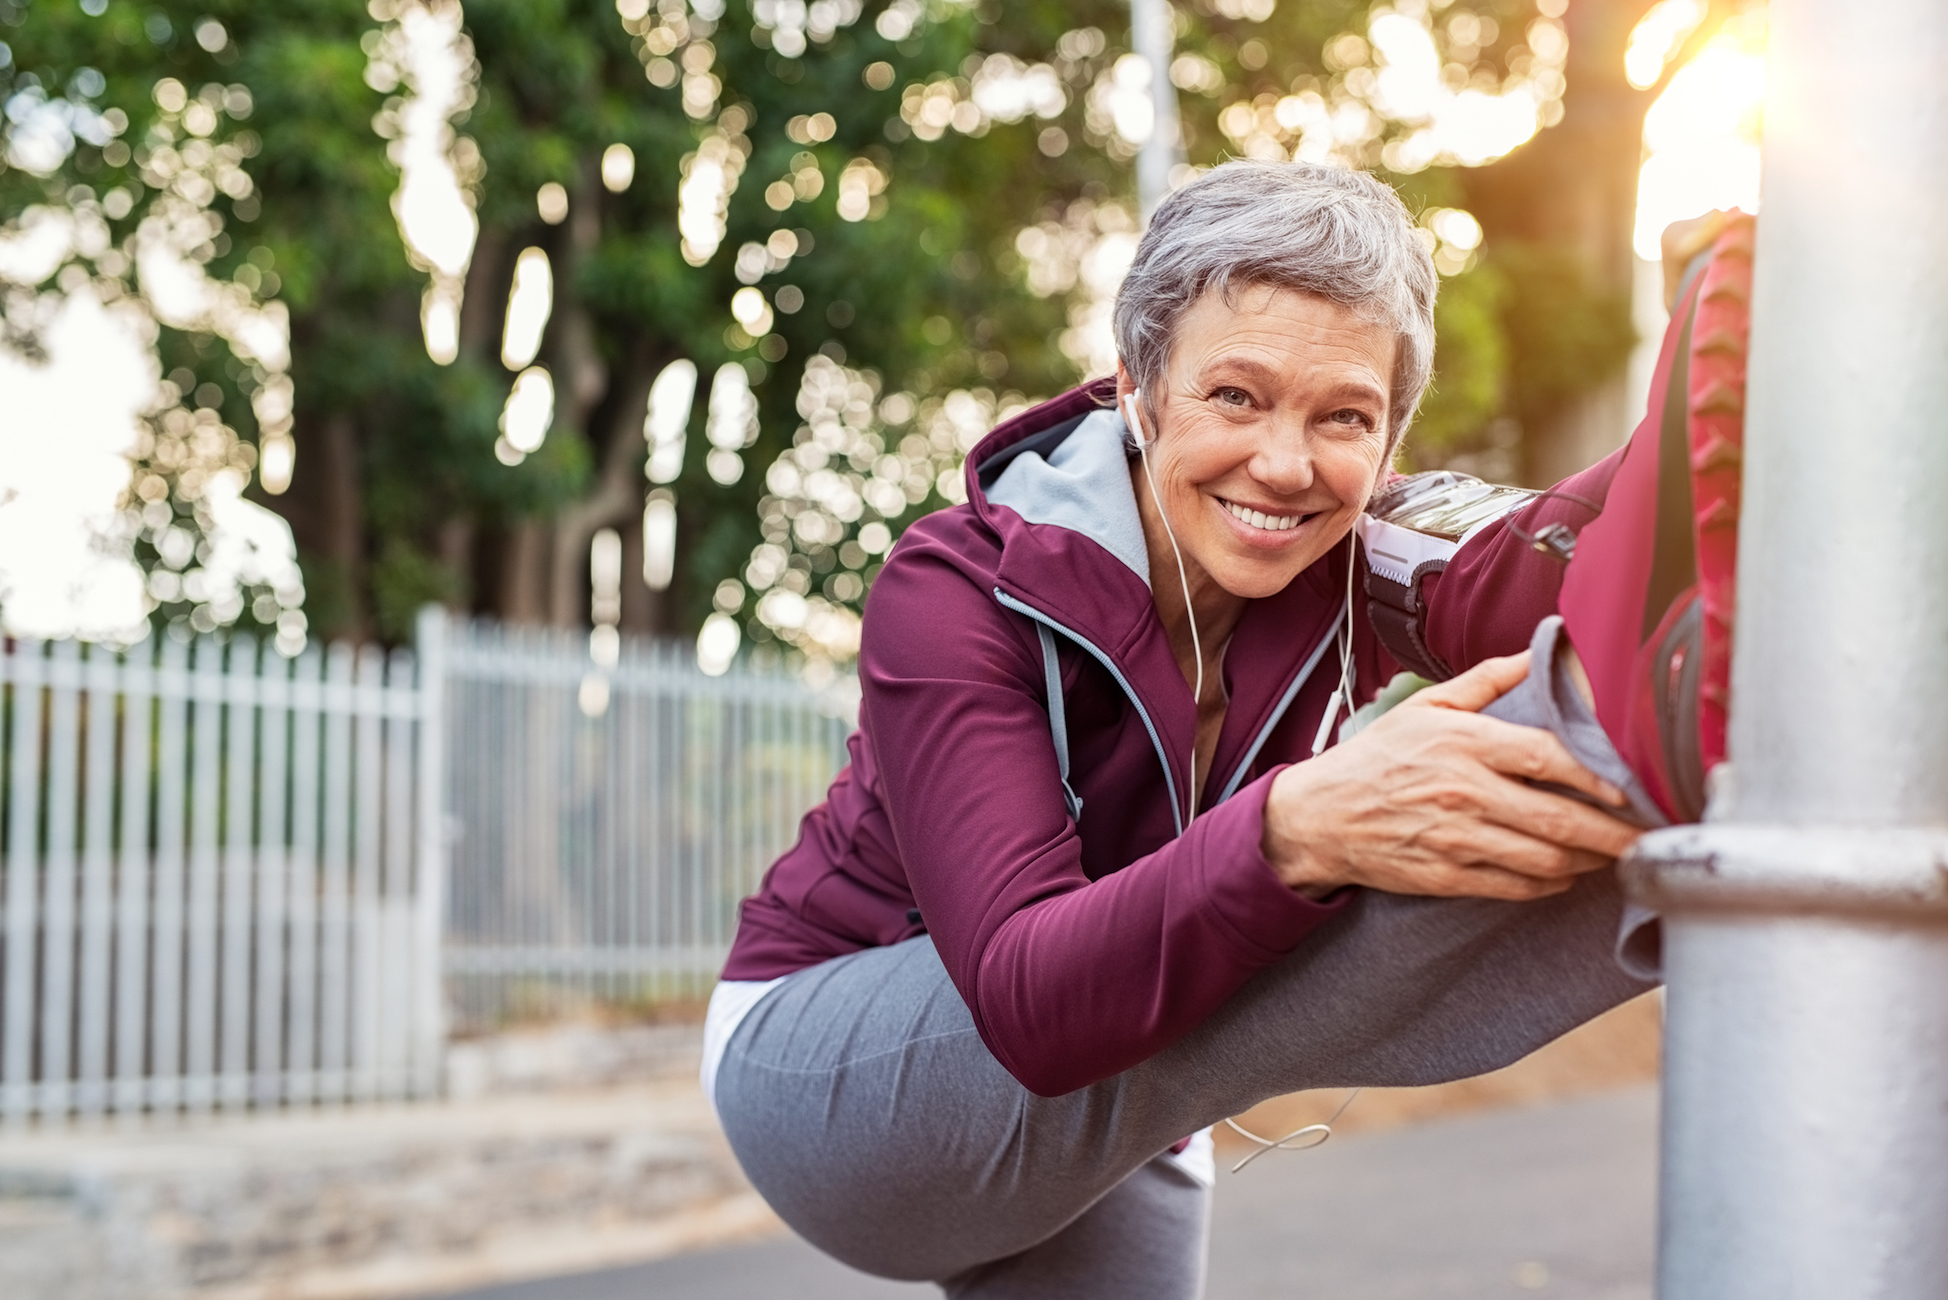 Smiling mature woman warming up before morning jog